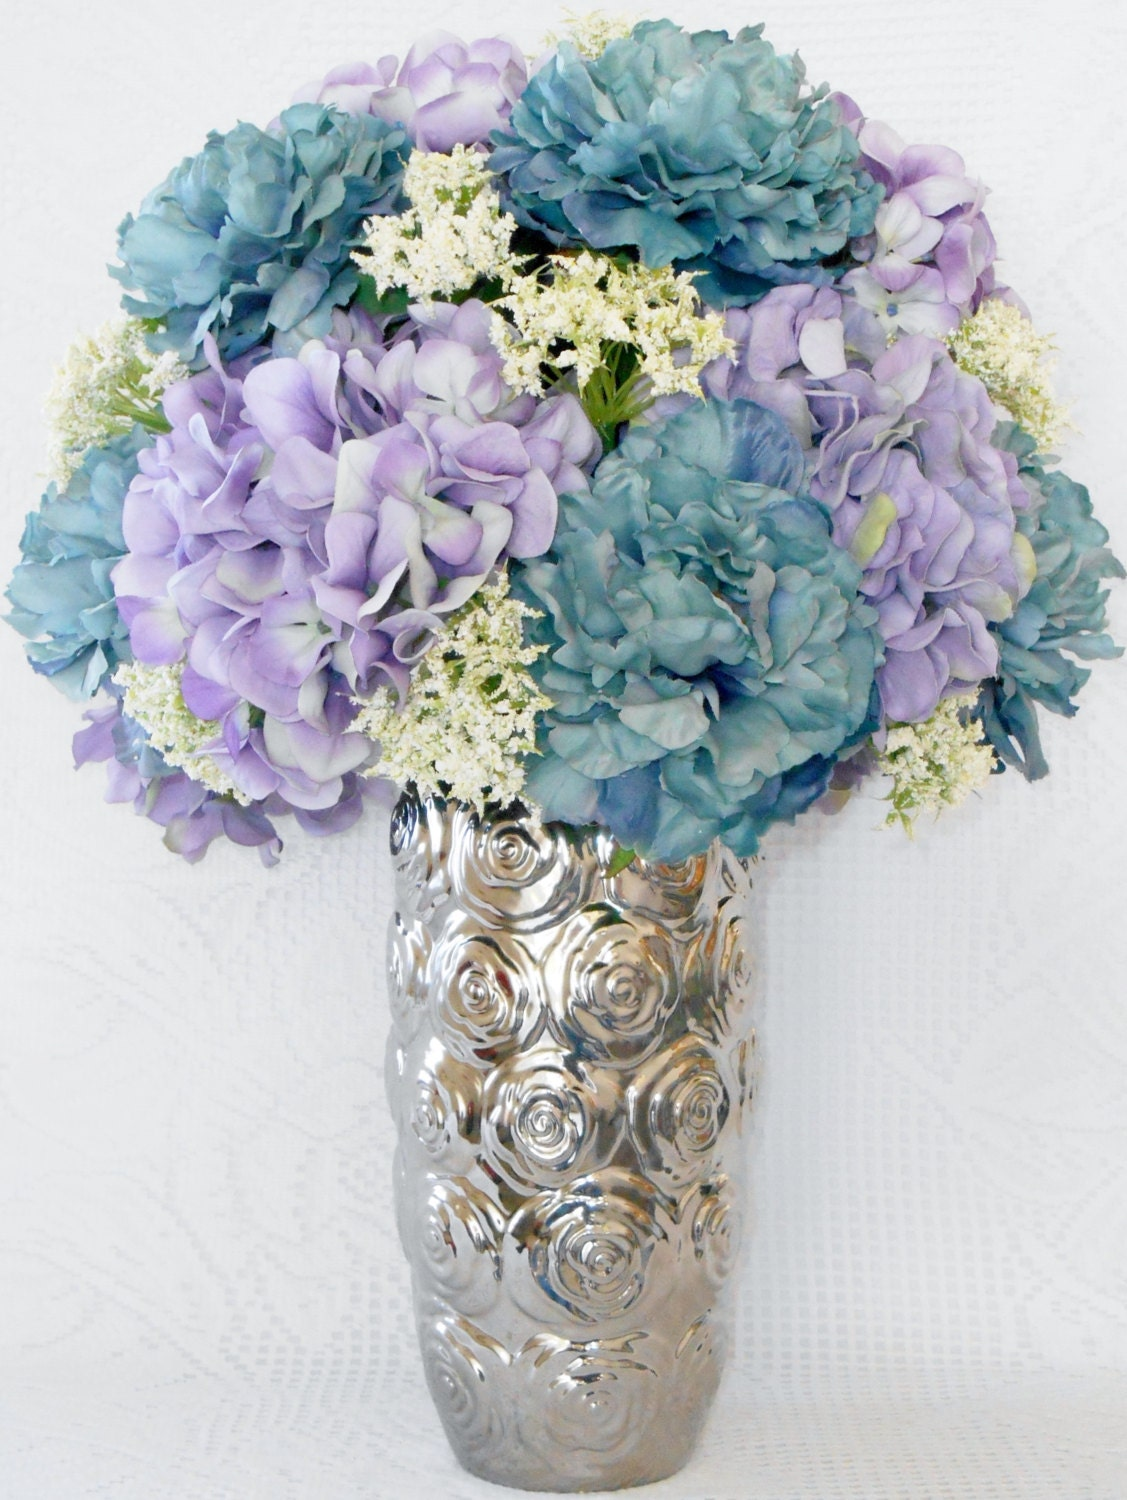 Artificial Flower Arrangement Teal Peonies Lavender